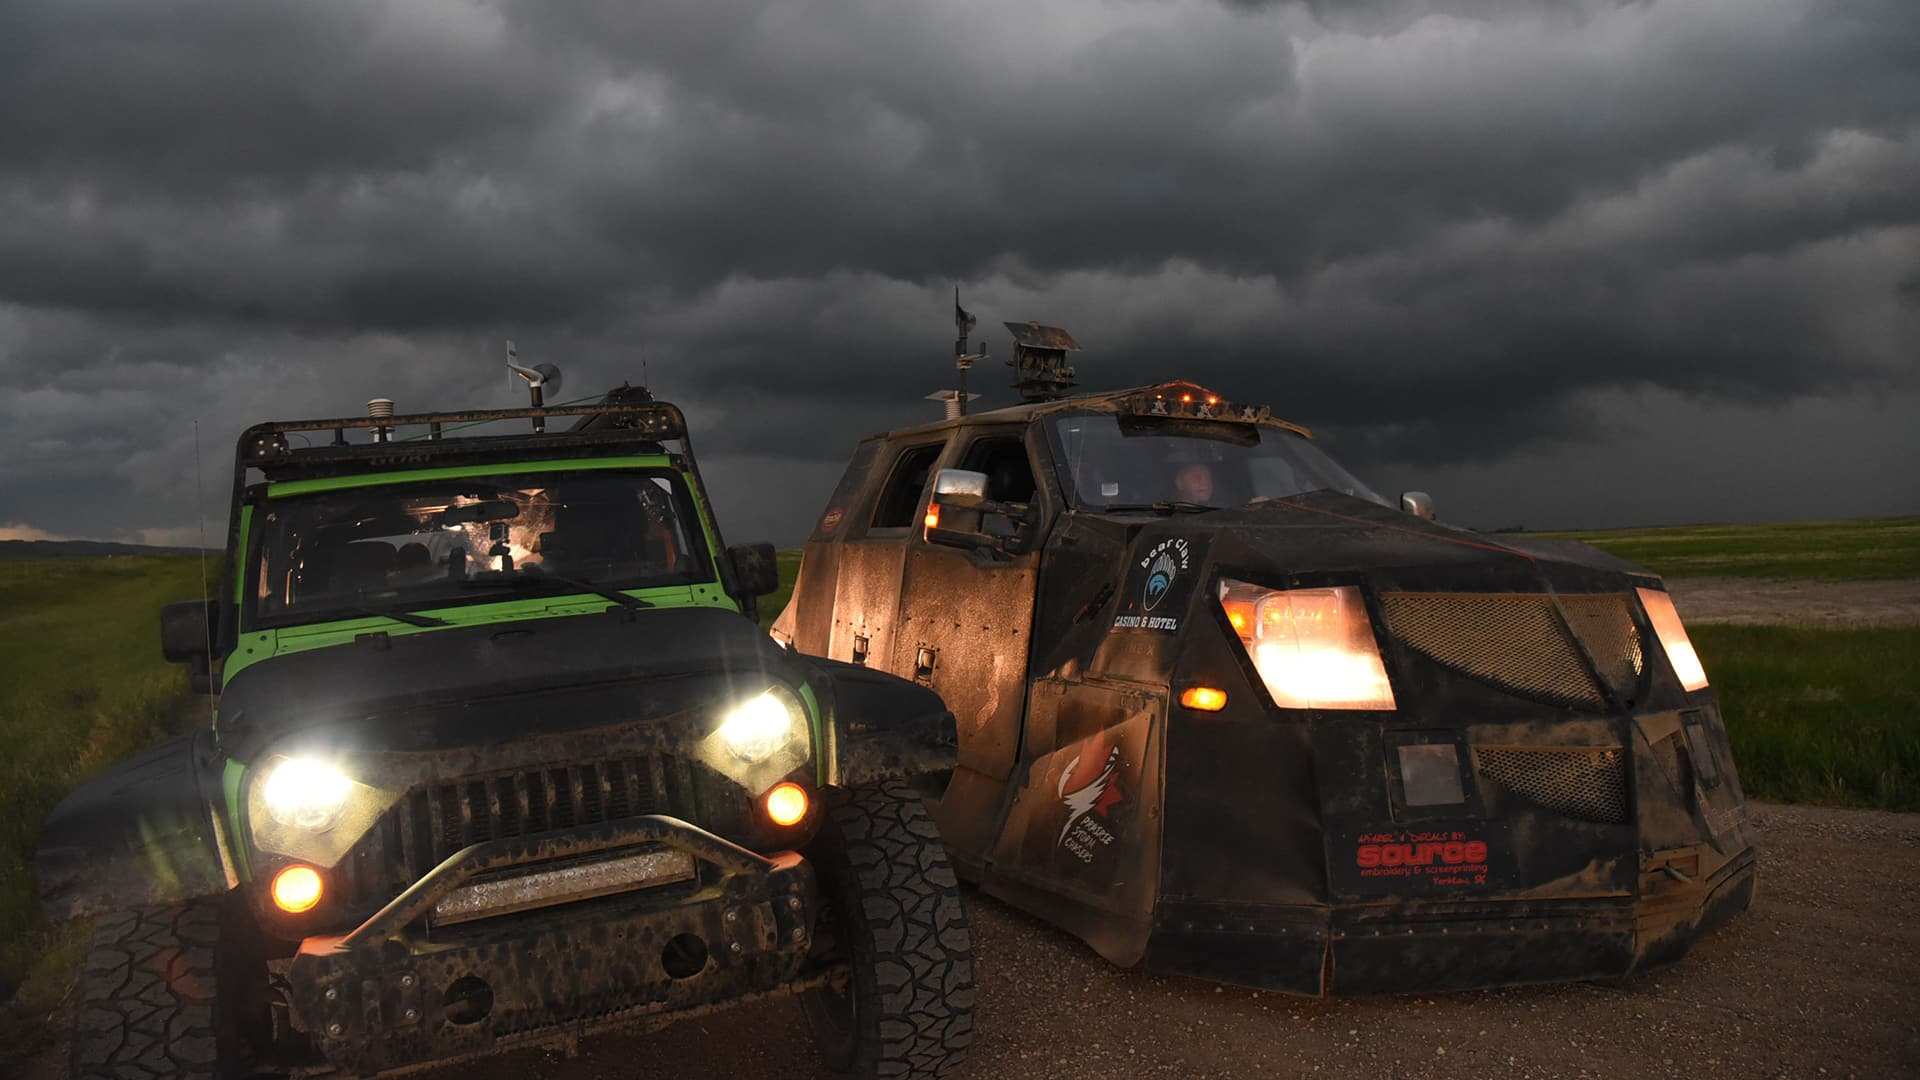 This armoured vehicle and its crew chase high winds to predict tornadoes on Canada's prairies